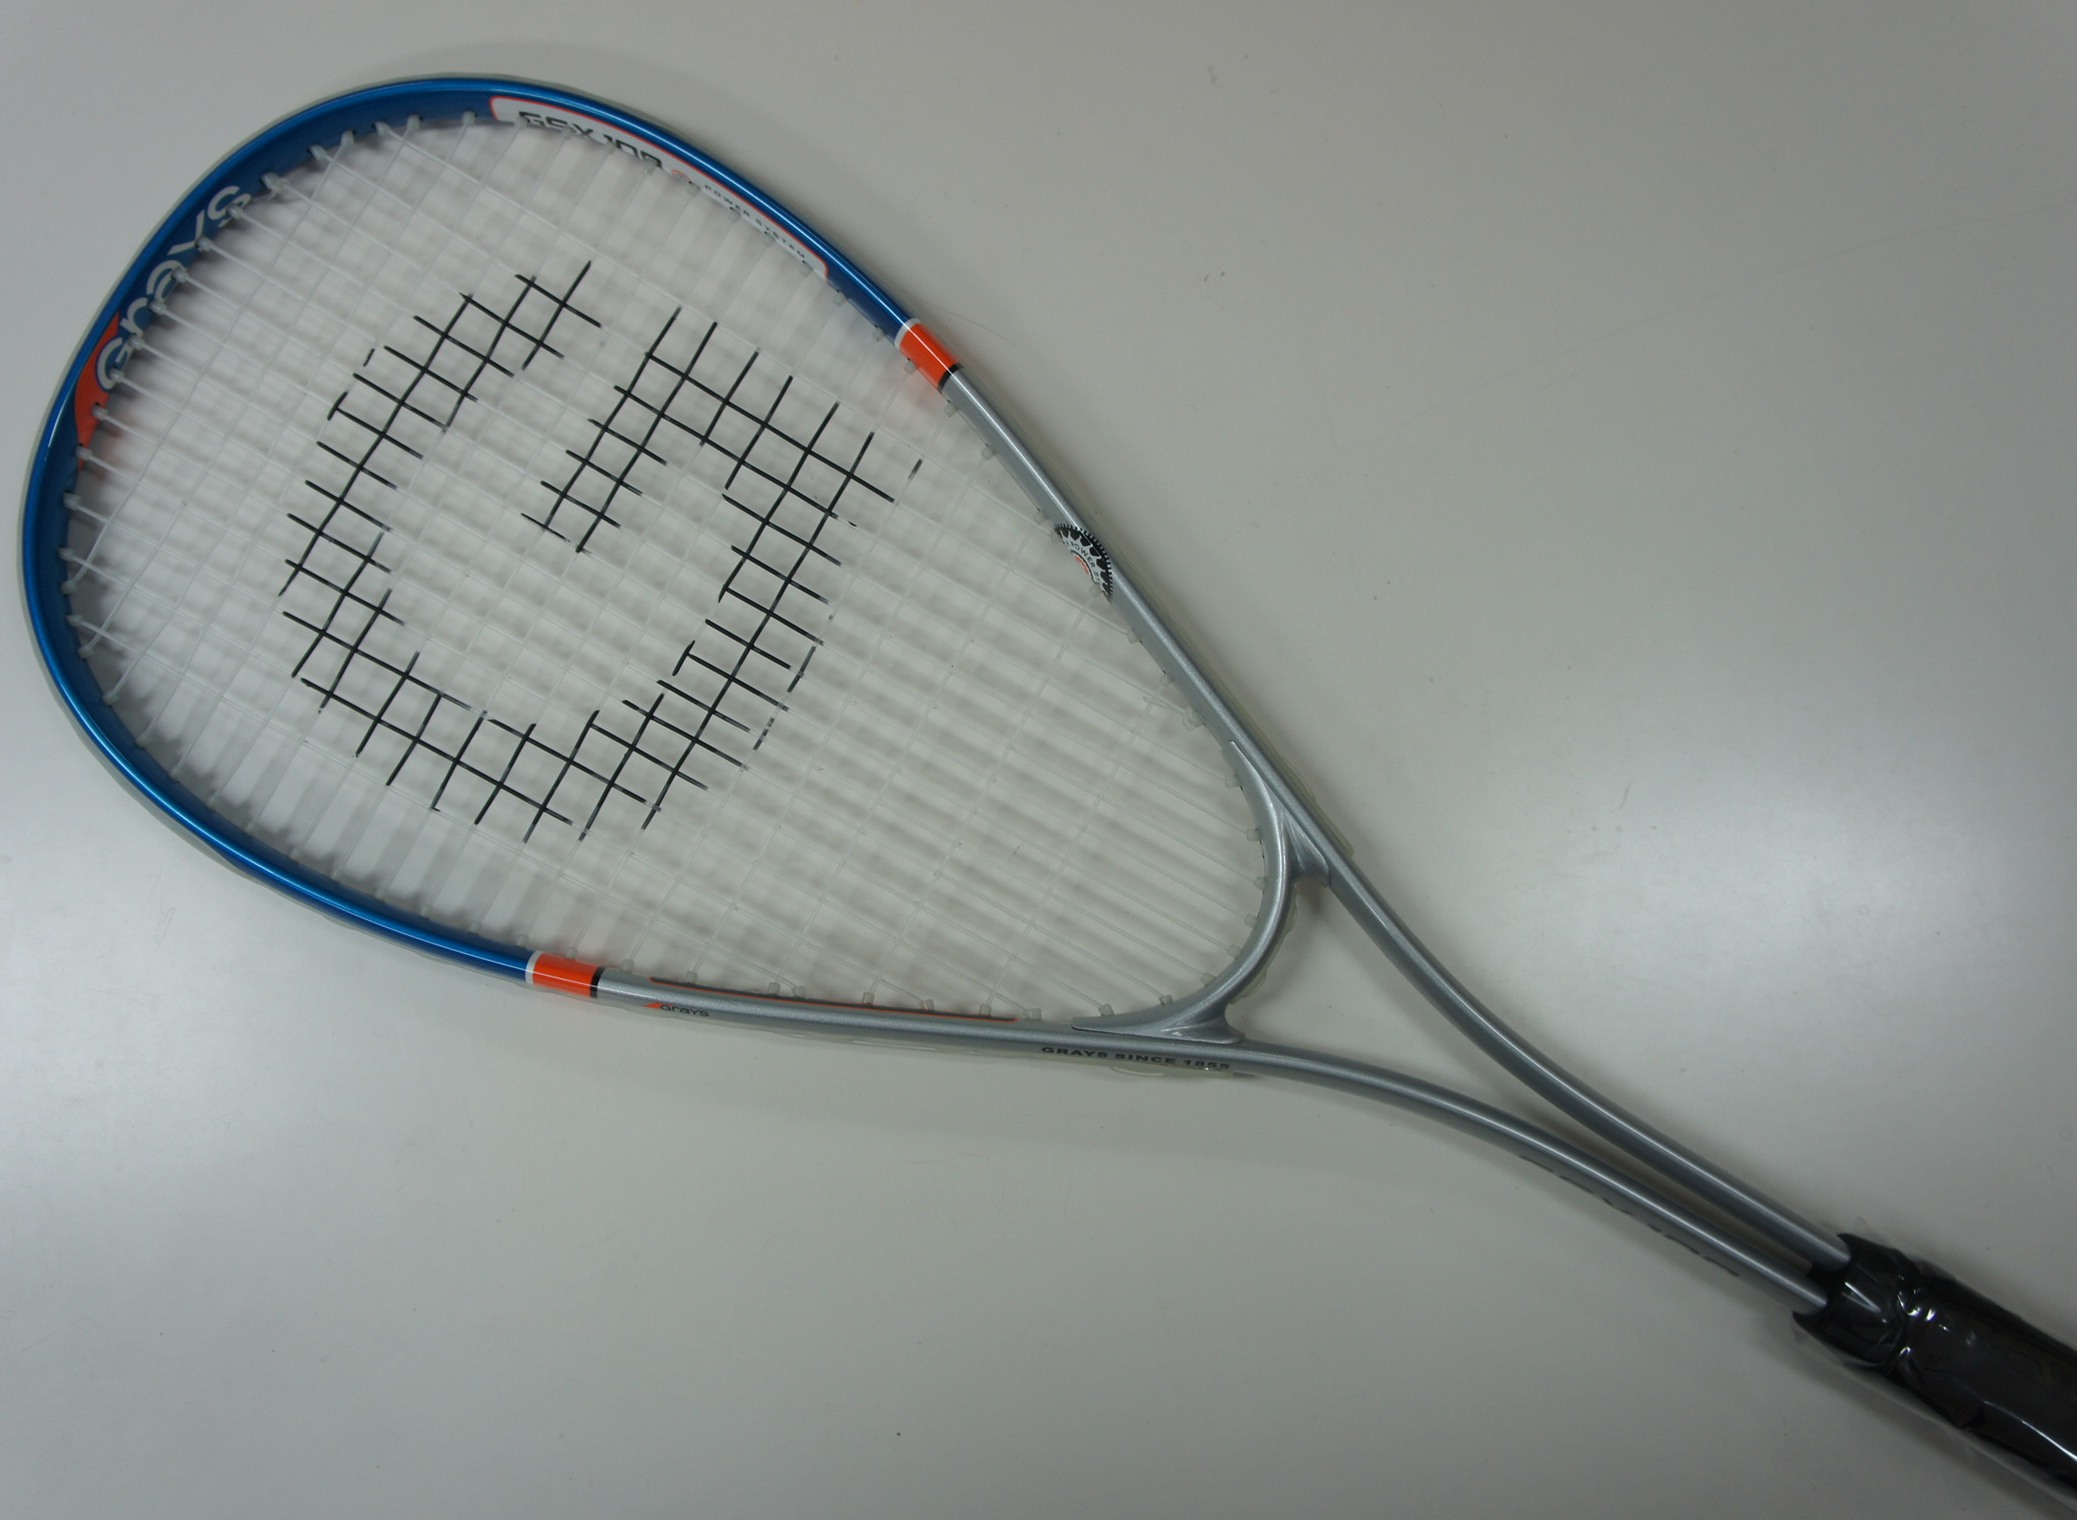 Genuine Grays GSX-100 Squash Racquet with Cover, Alloy, Strung